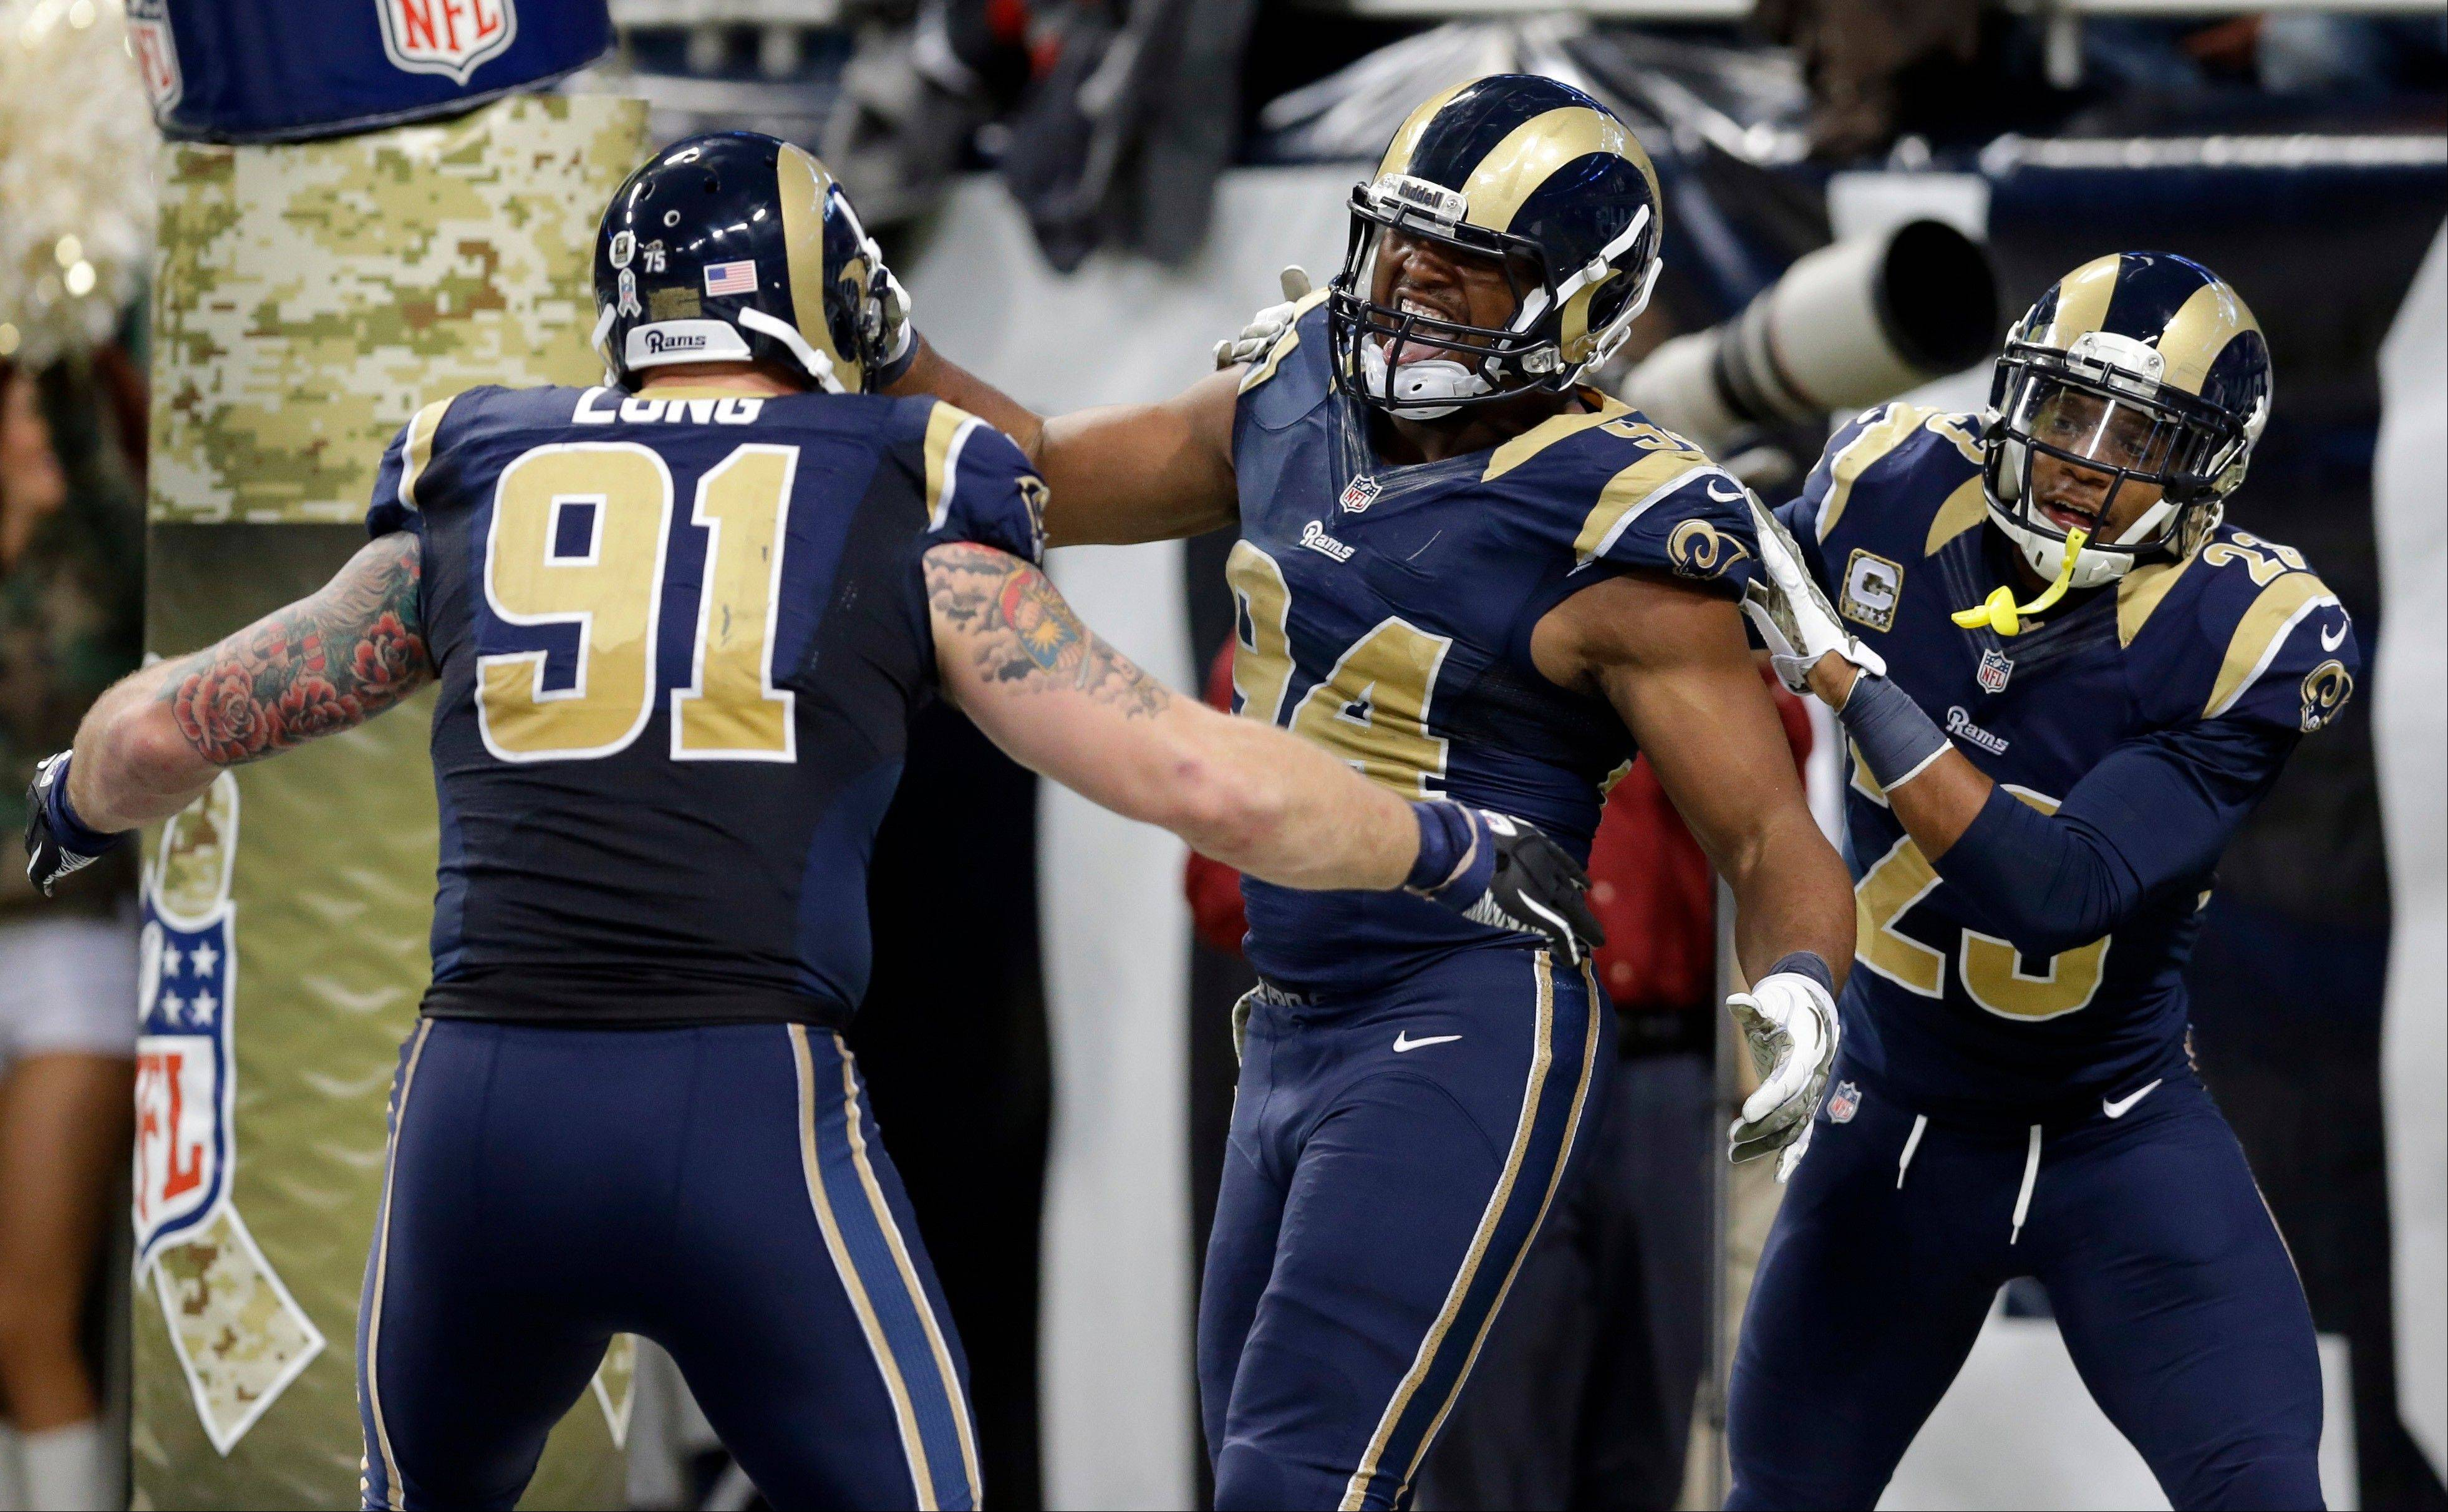 St. Louis Rams defensive end Robert Quinn, center, is congratulated by teammates Chris Long, left, and Rodney McLeod after recovering a fumble by Chicago Bears quarterback Josh McCown and returning it 31-yard for a touchdown during the fourth quarter. The Rams won 42-21.